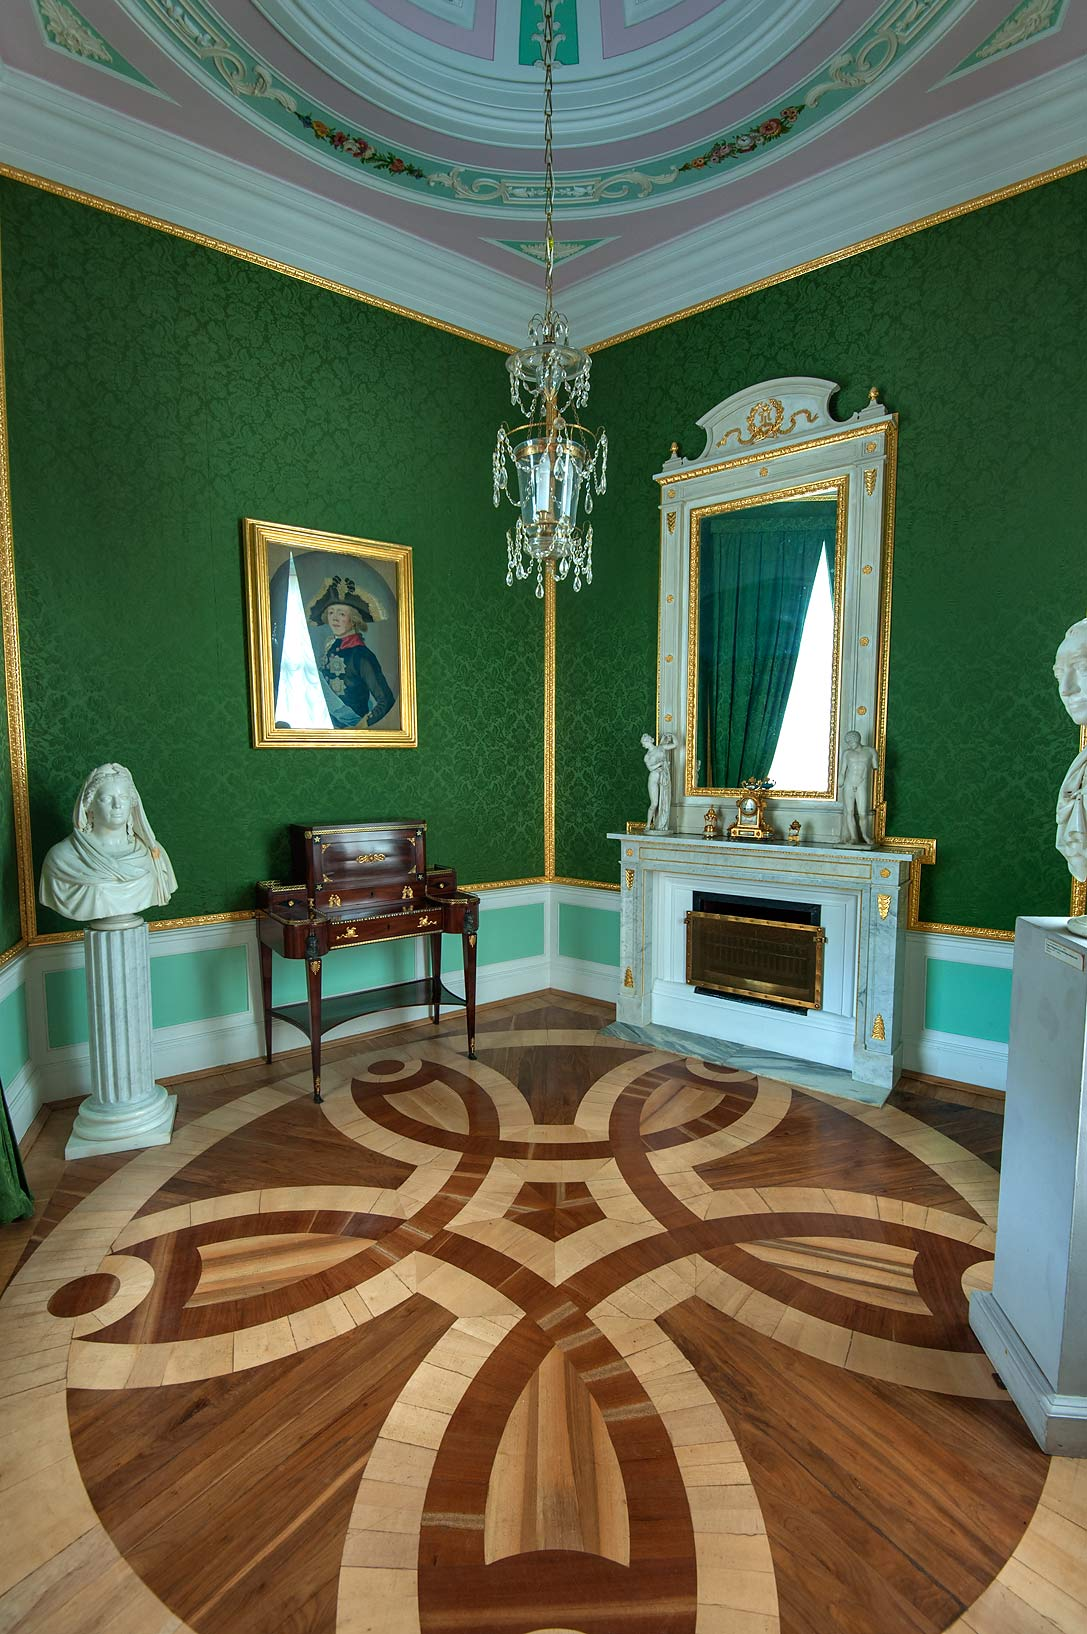 Corner room in Gatchina Palace. Gatchina, suburb of St.Petersburg, Russia